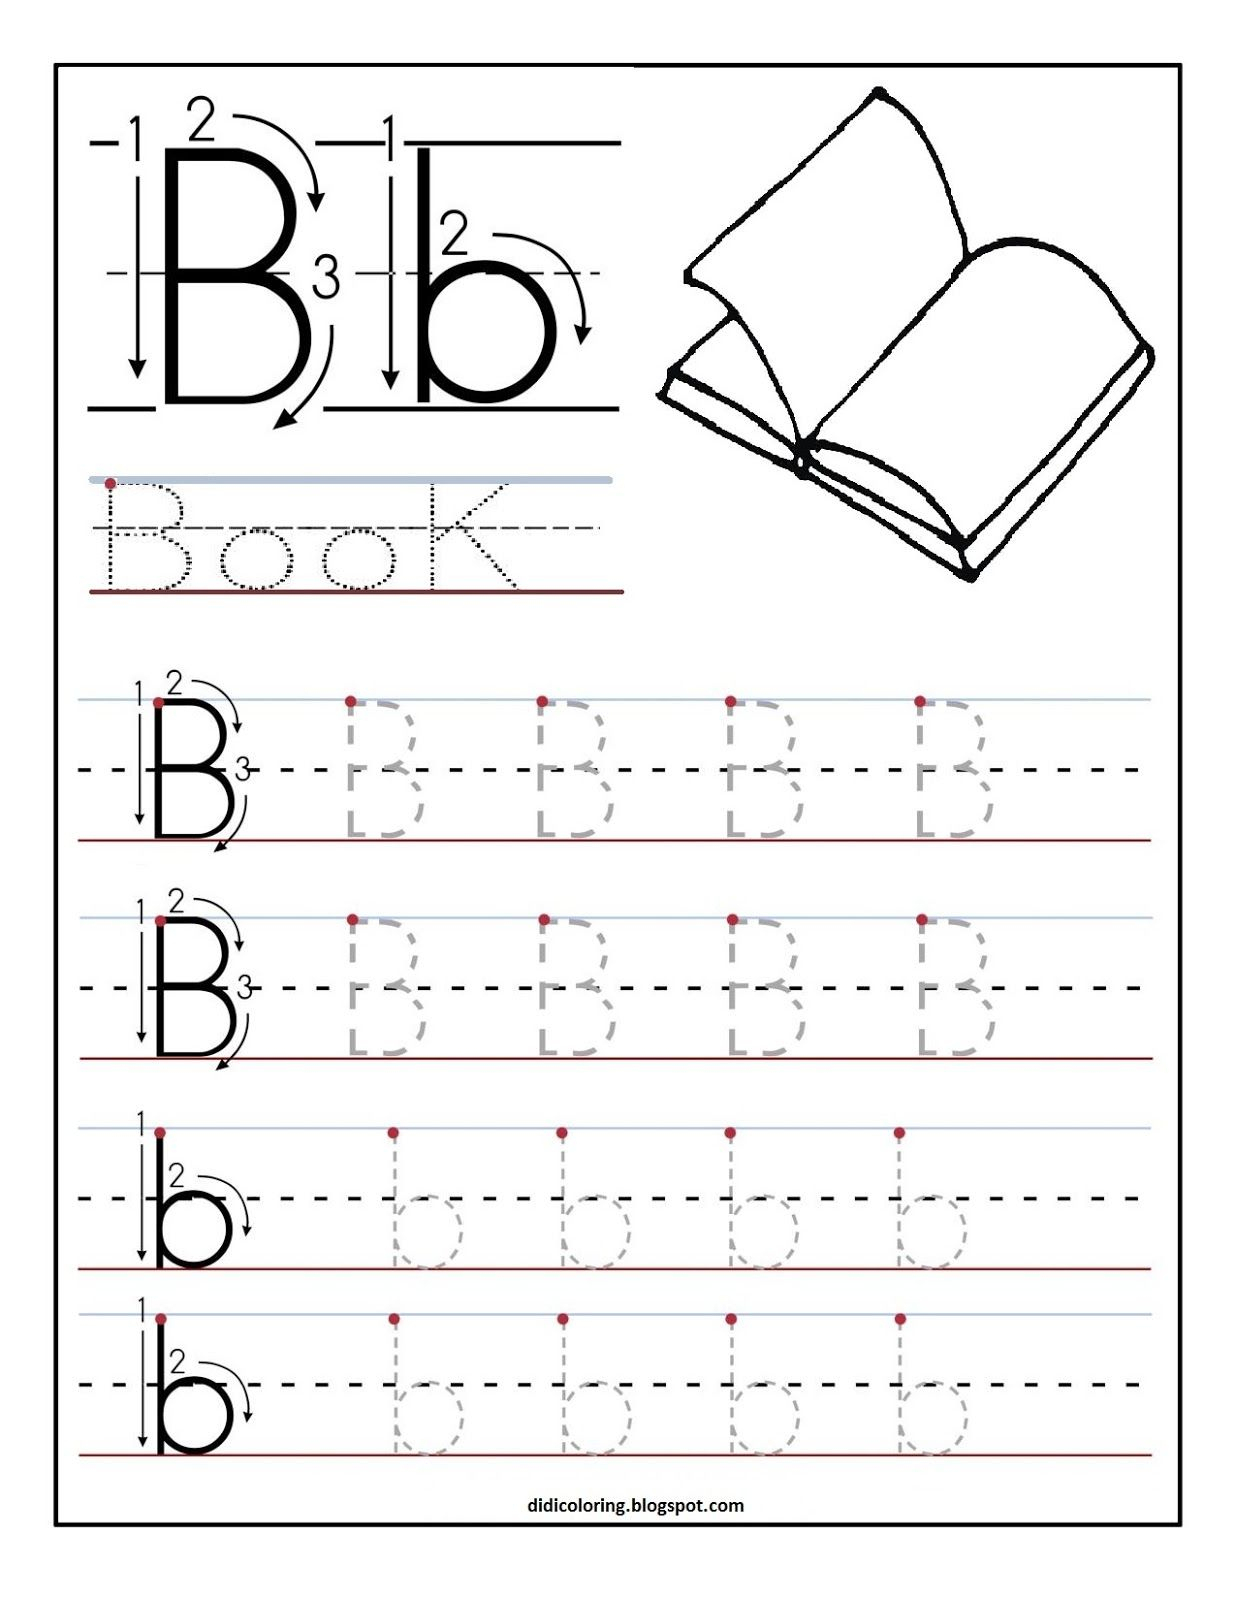 Free Printable Worksheet Letter B For Your Child To Learn And Write - Free Printable Letter Worksheets